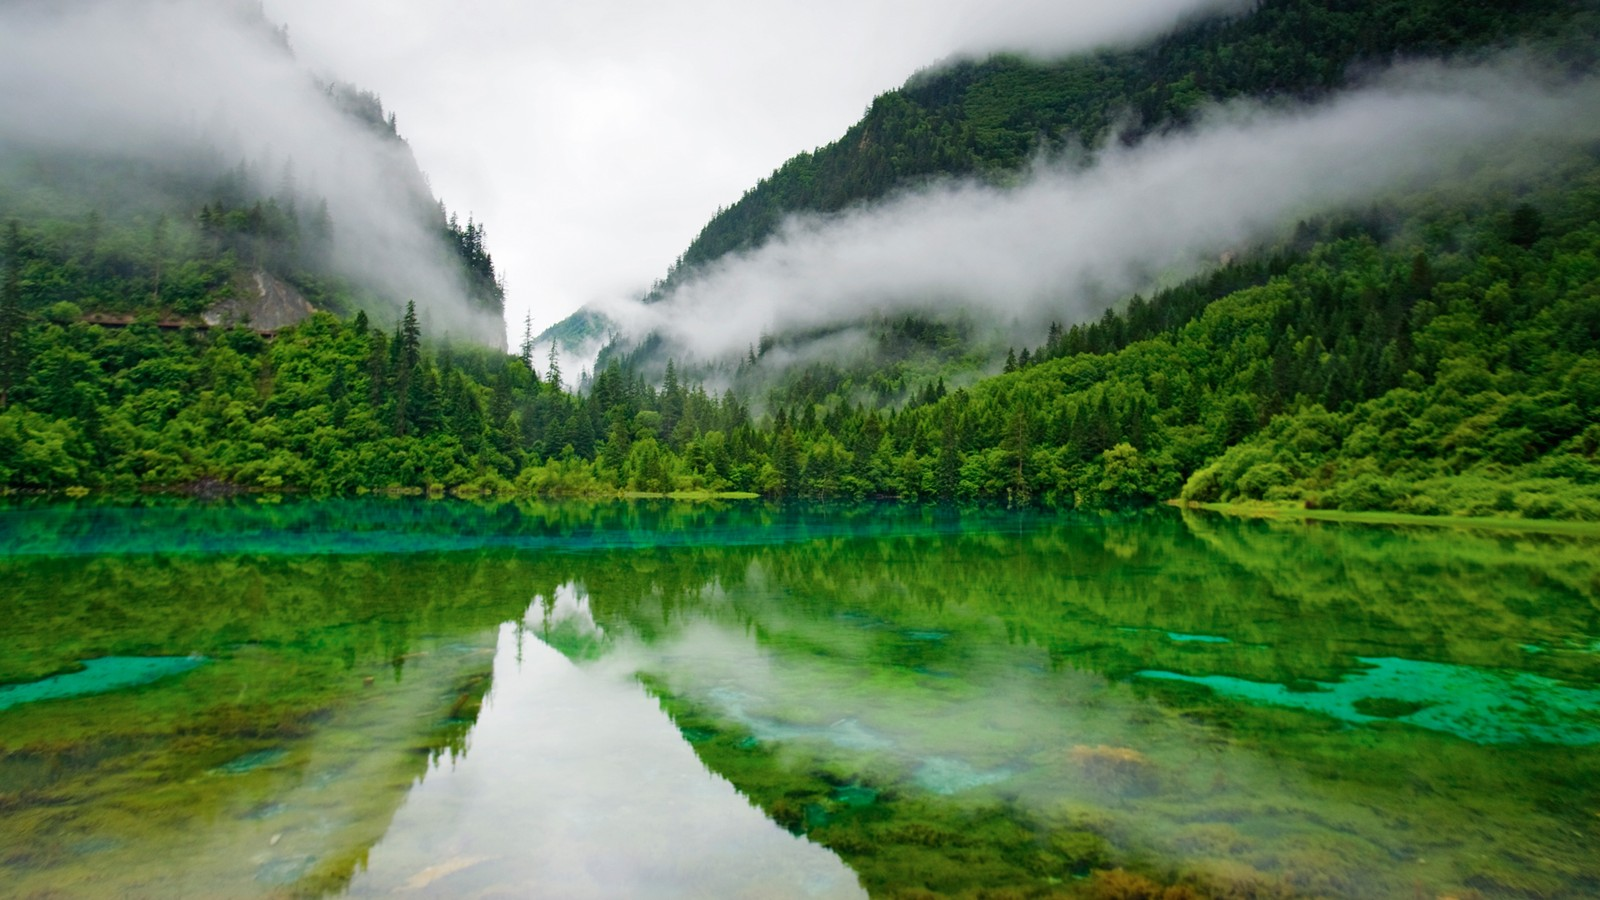 Jiuzhaigou colored sea in the morning mist 31665